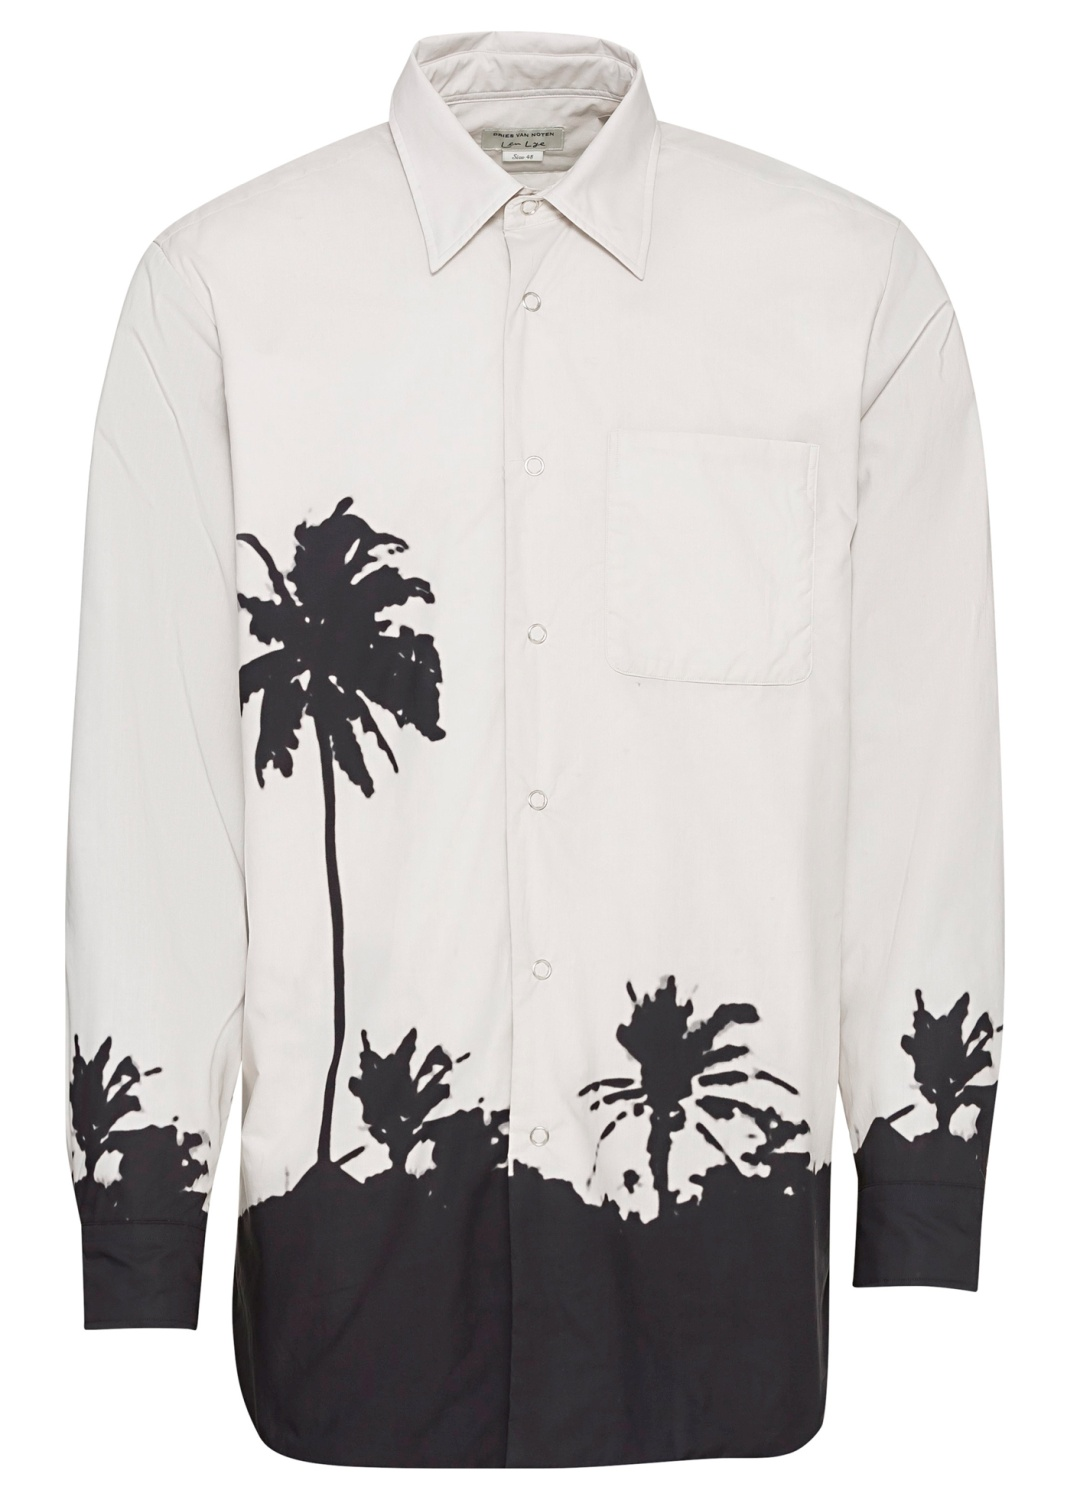 CARNELL 2066 M.W. SHIRT image number 0